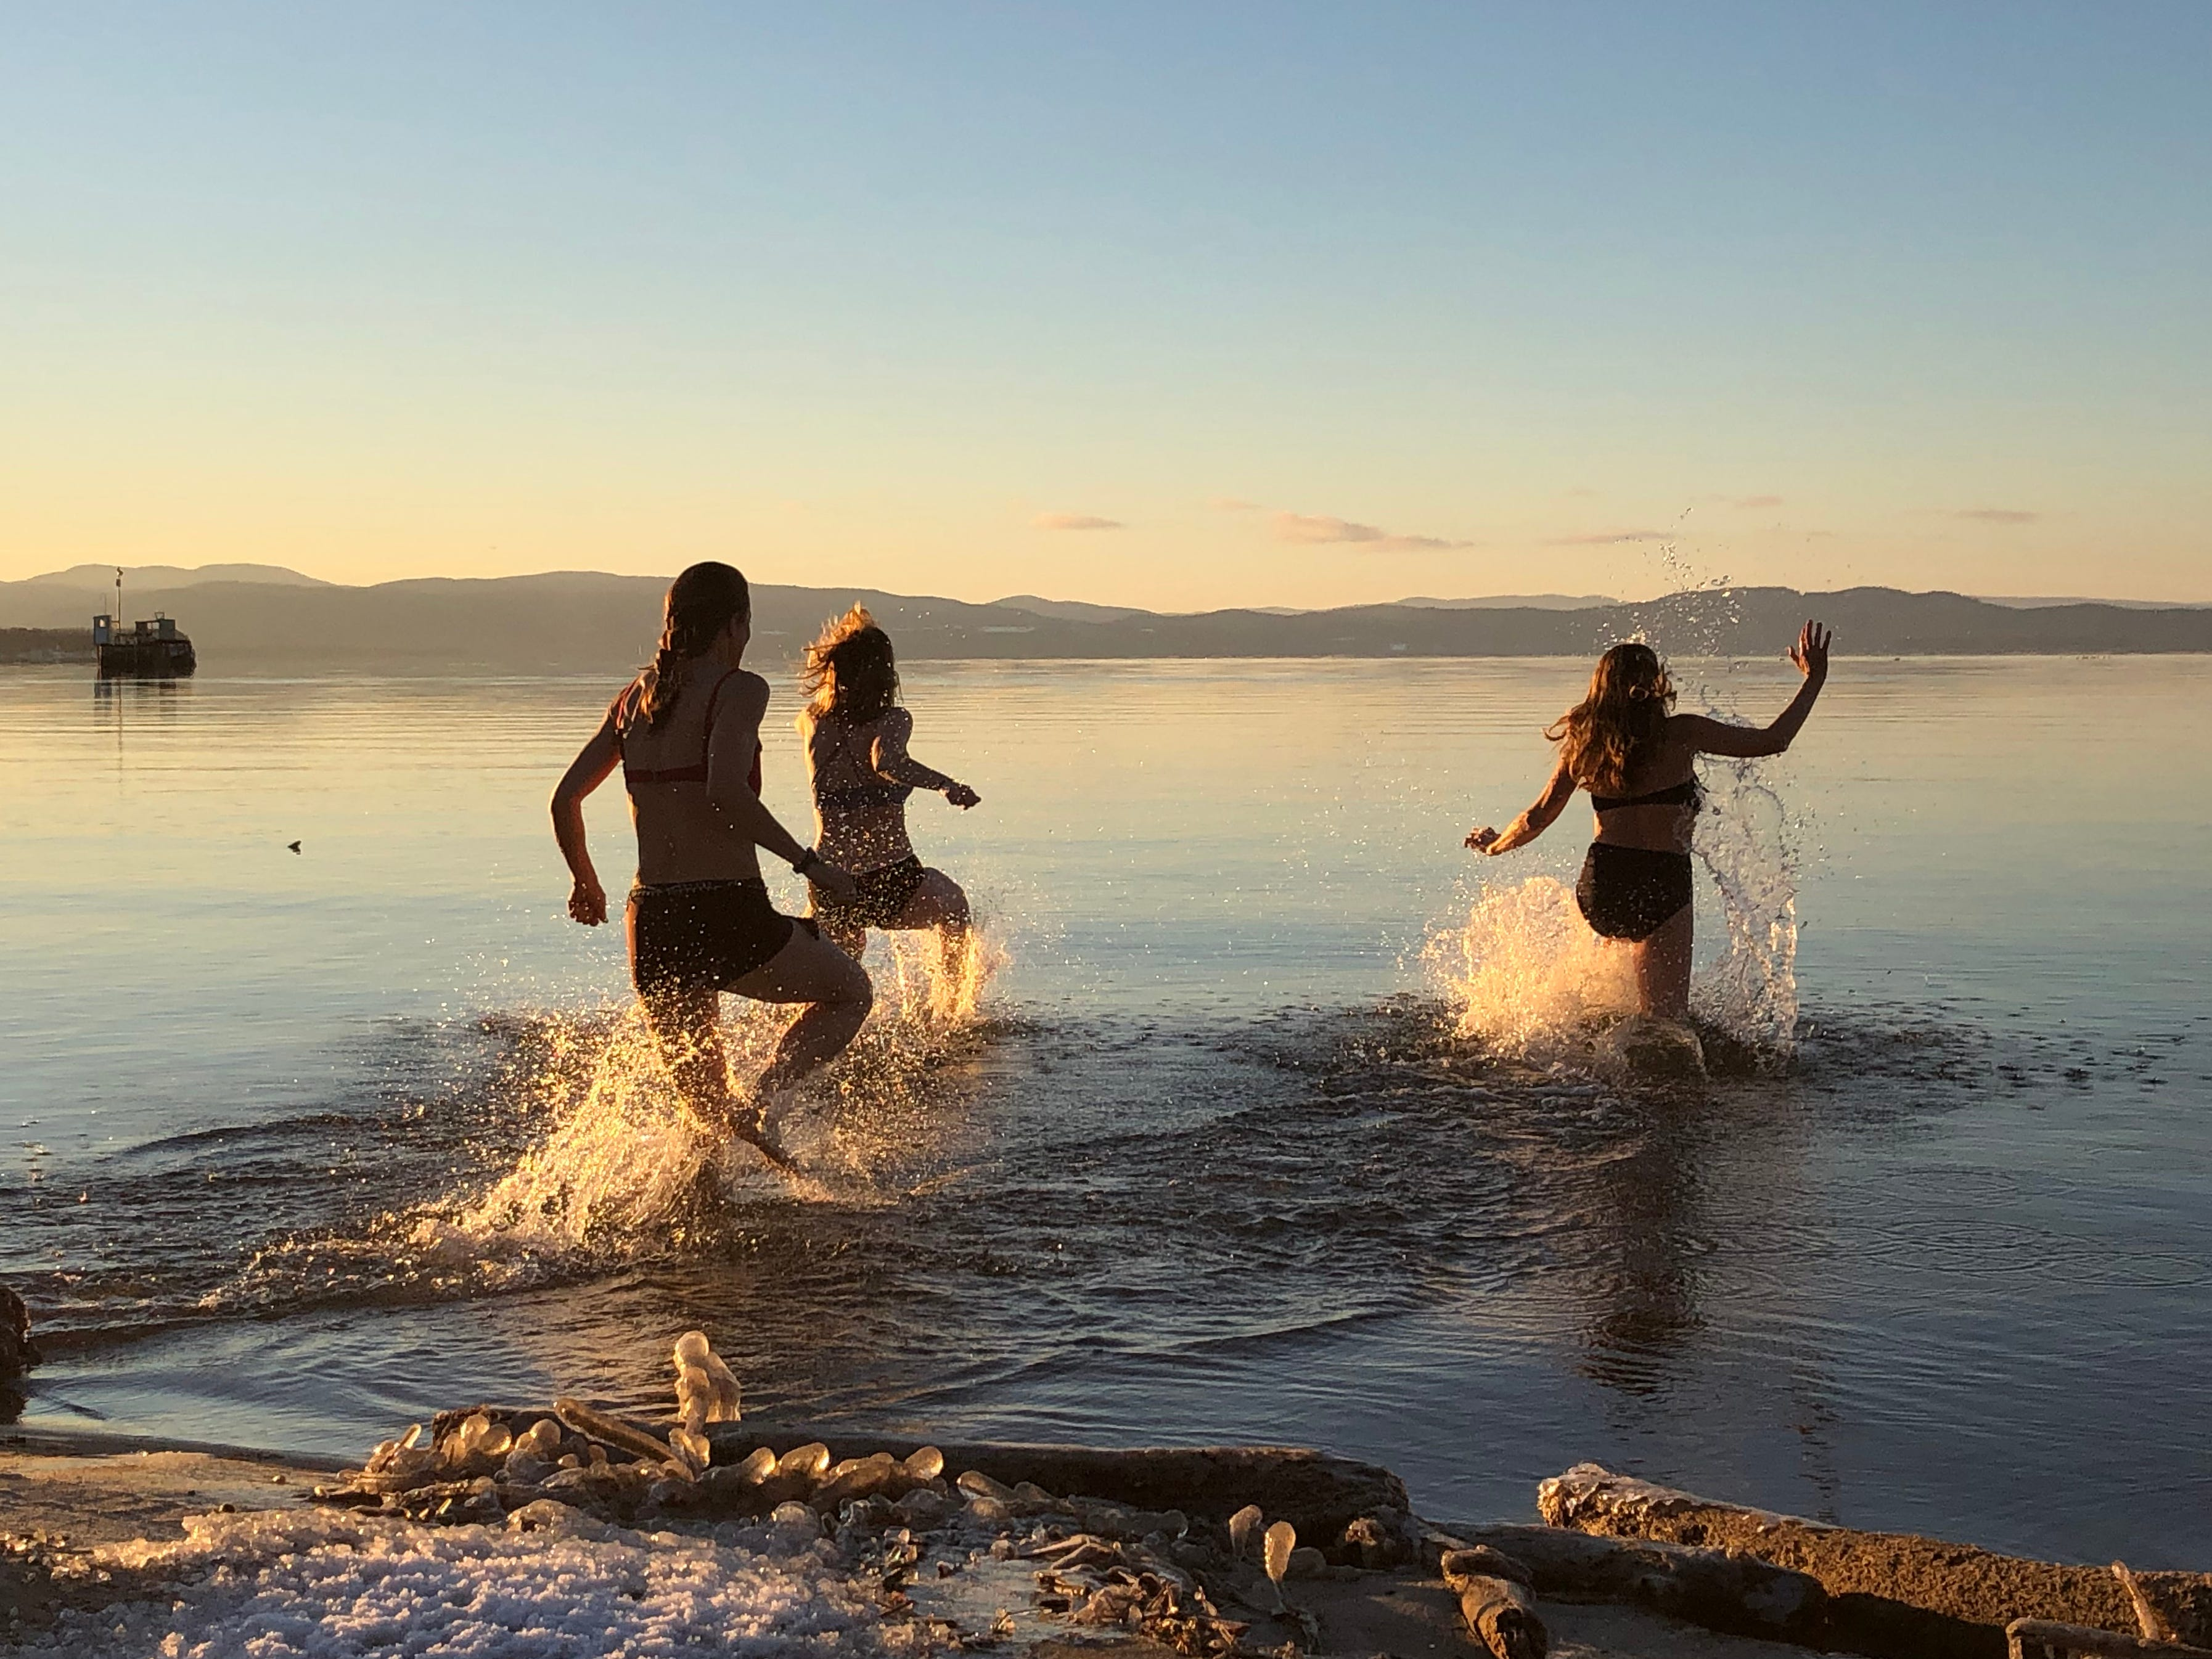 """Katharine Montstream of Burlington (at right) dashes into Lake Champlain for a quick dip with her daughter, Charlotte Dworshak (center), and sister, Sydney Montstream-Quas, on Dec. 25, 2018. Neither of Montstream's companions wanted to join her into the 38-degree water (and 22-degree air), she said, """"But, since it was my birthday, they felt like they had to."""""""